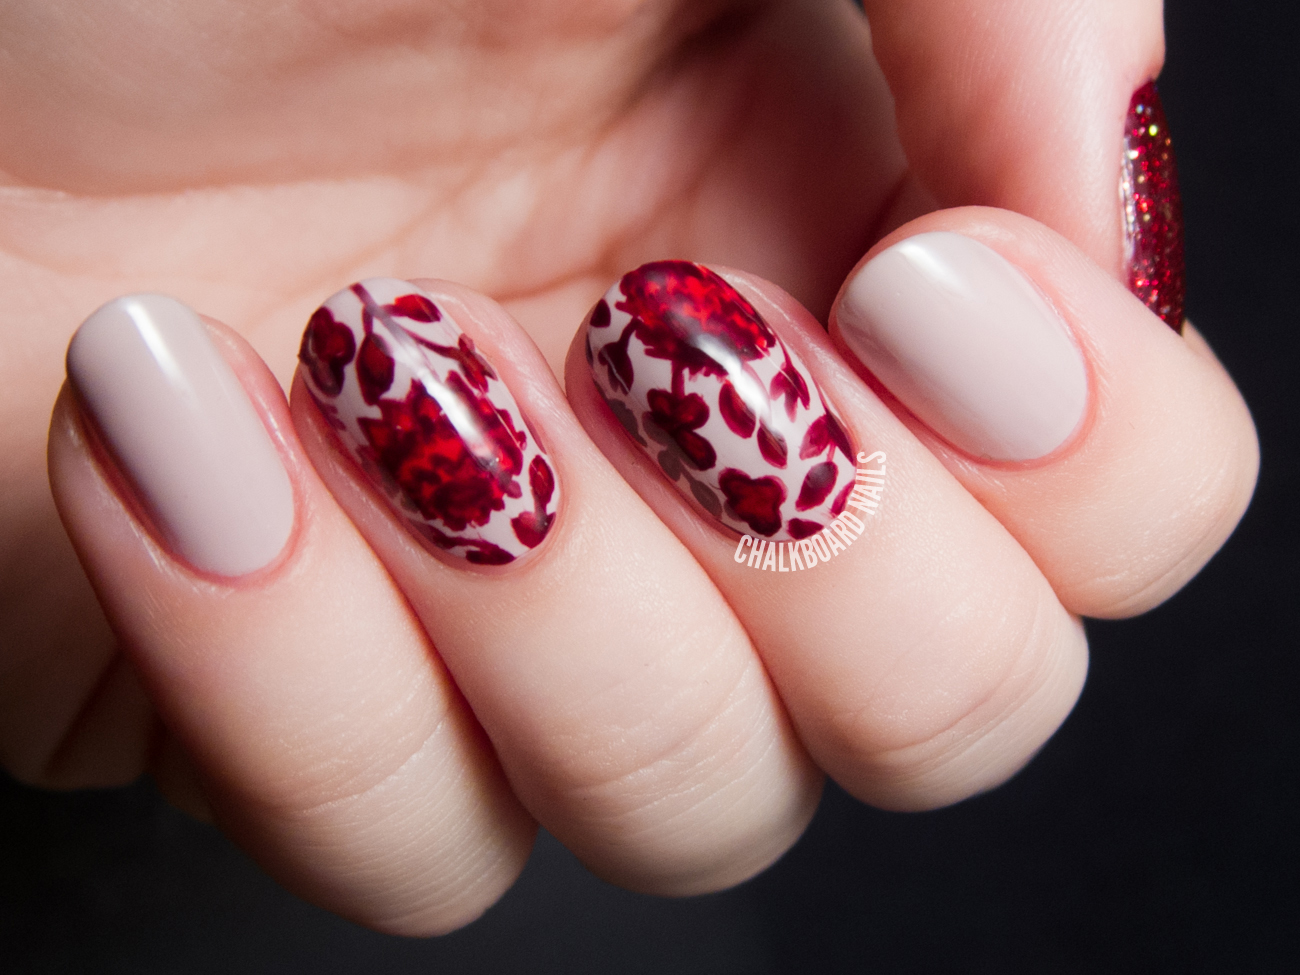 Ruby red floral print by @chalkboardnails